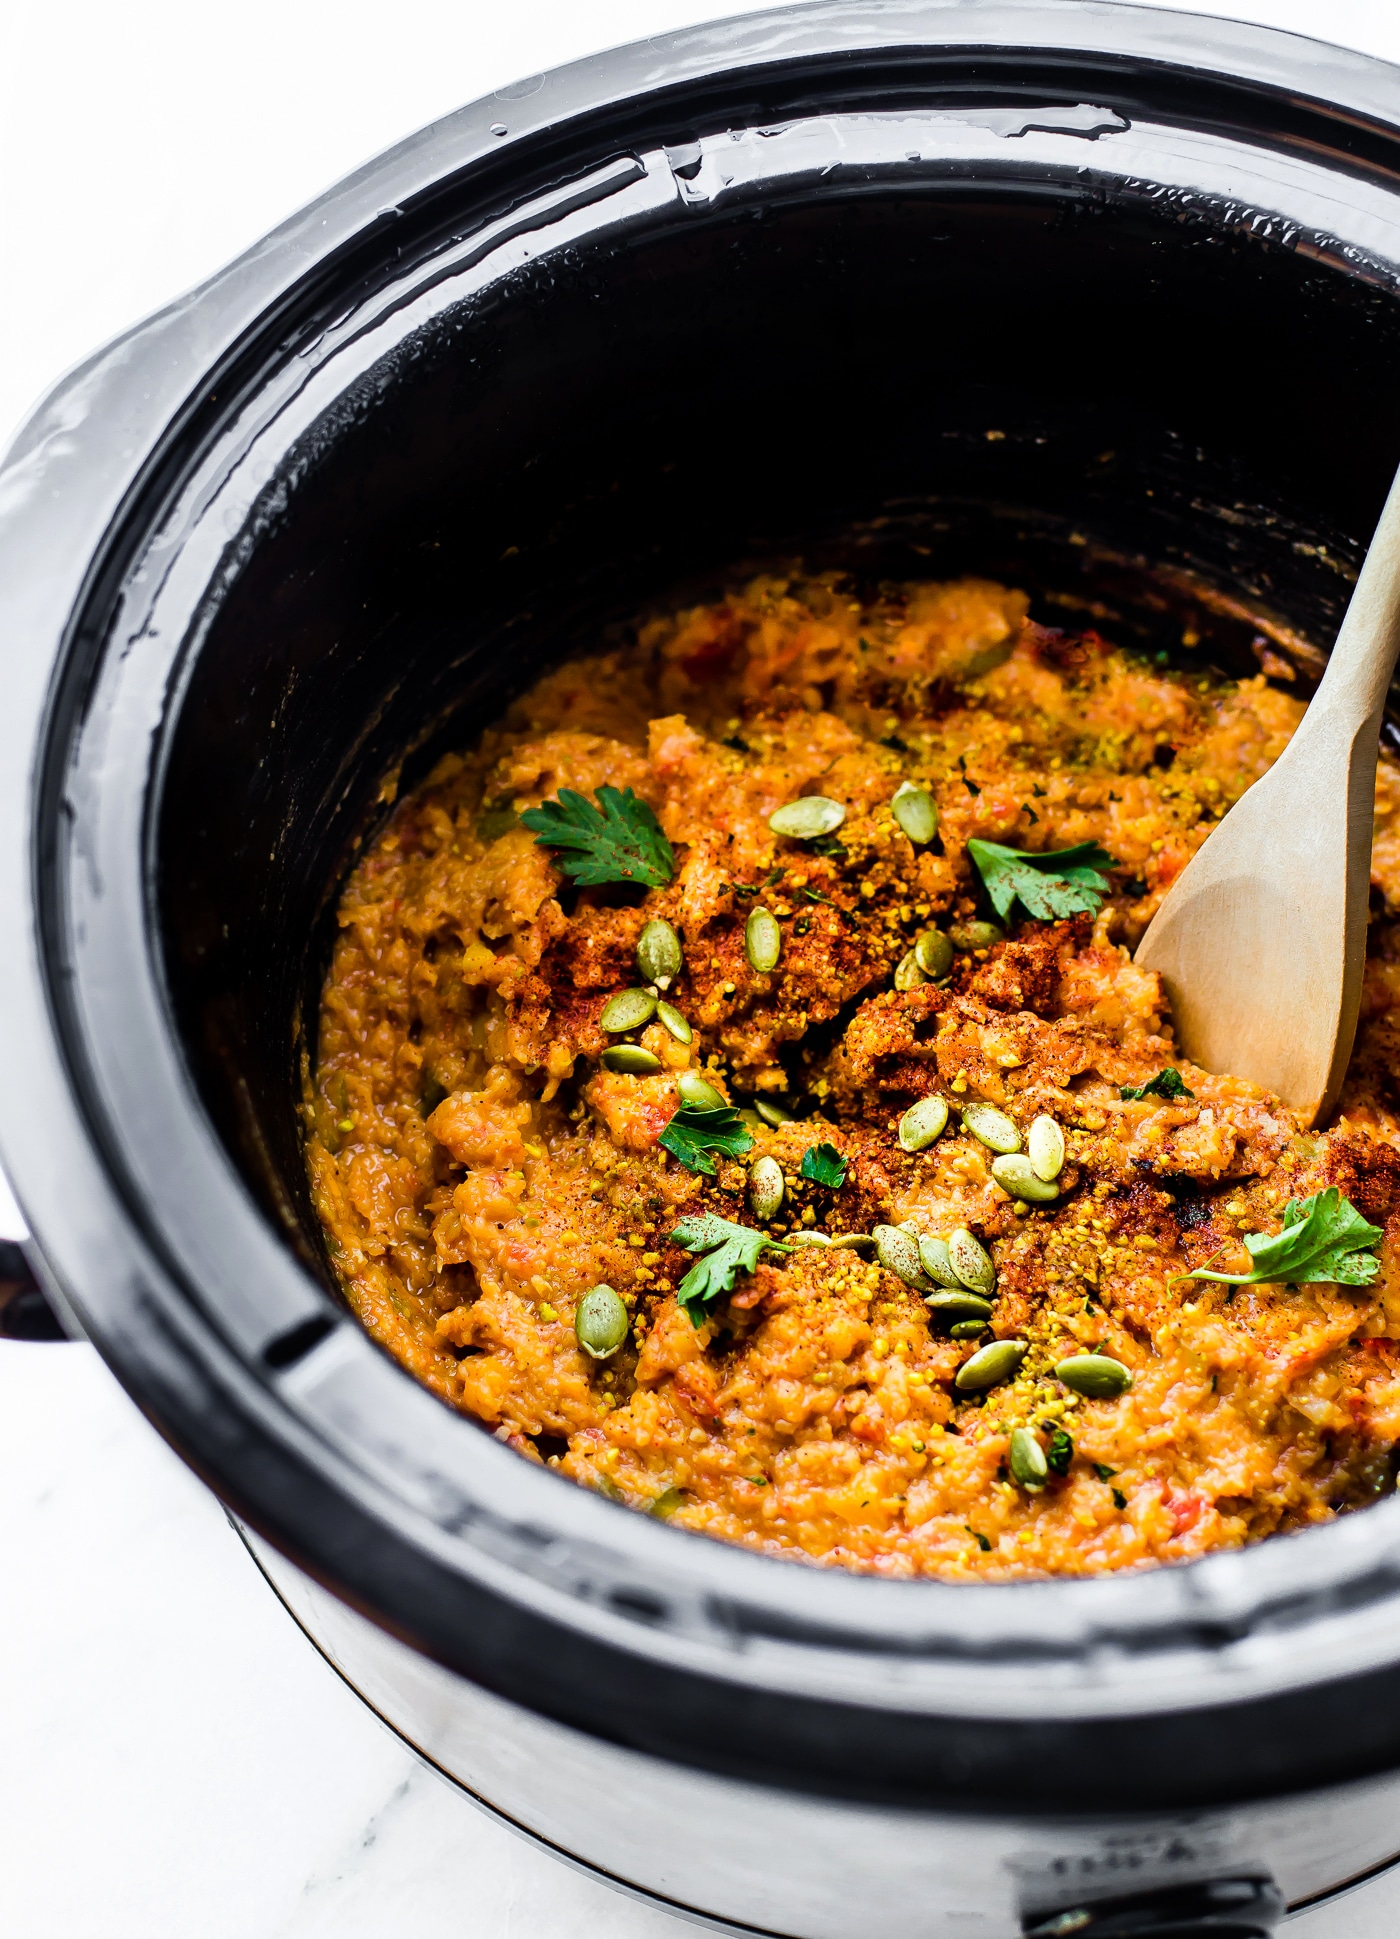 Vegan Crock Pot chili! A hearty yet healthy BBQ Vegan lentil chili made with a few simple ingredients. Just like a taste of Texas! BBQ spices, sauce, onions, vegetables, and lentils. Throw in the crockpot and go. A fiber and protein rich meal that will feed plenty. Gluten-free and Grain Free.